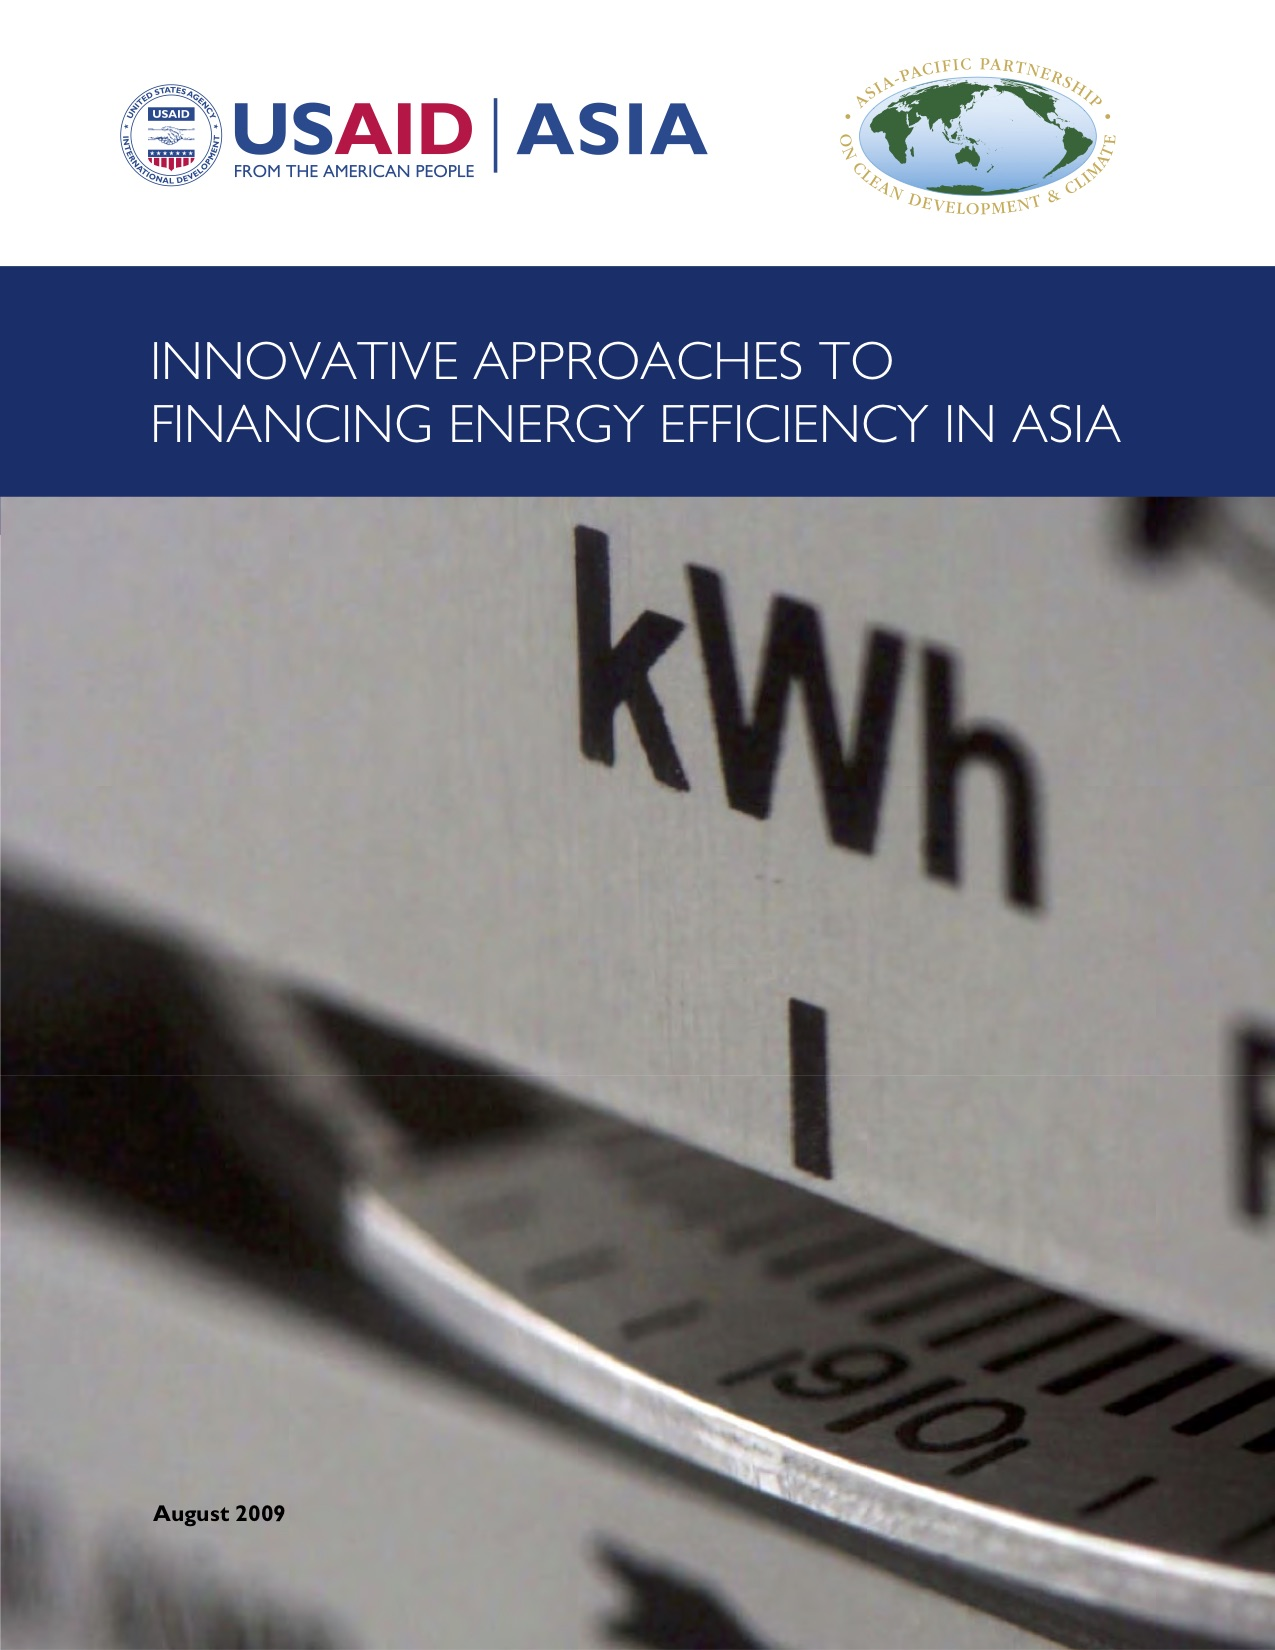 Innovative Approaches to Financing Energy Efficiency in Asia